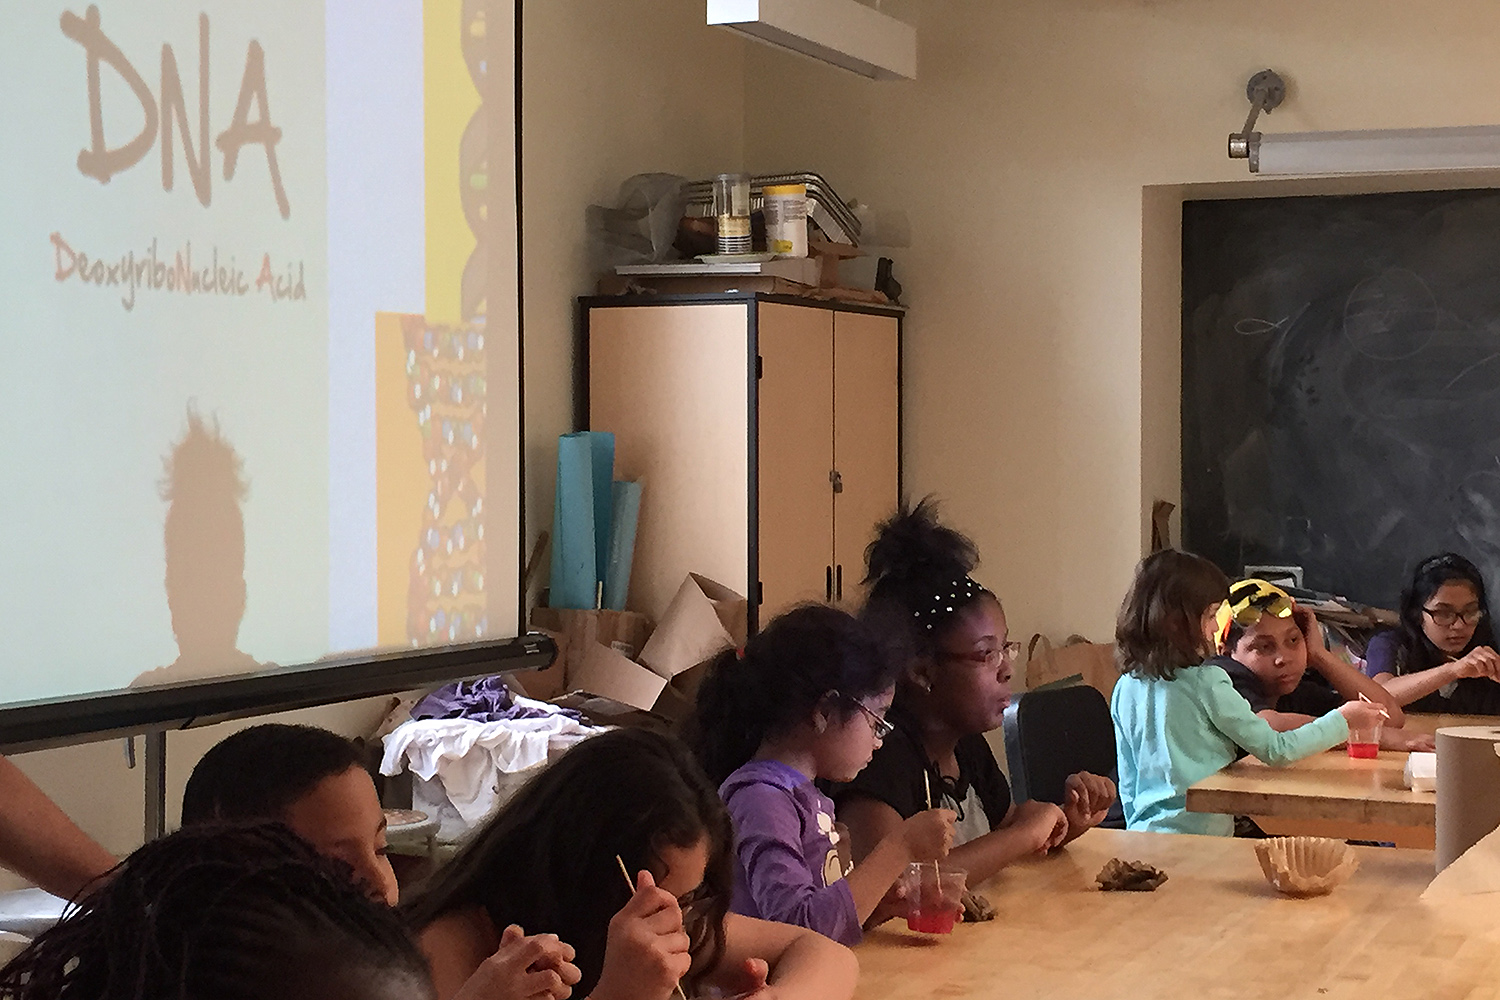 The National Institutes of Health invited Green Street Teaching and Learning Center to participate in the national celebration. Green Street was the only site in the State of Connecticut to lead a DNA workshop.